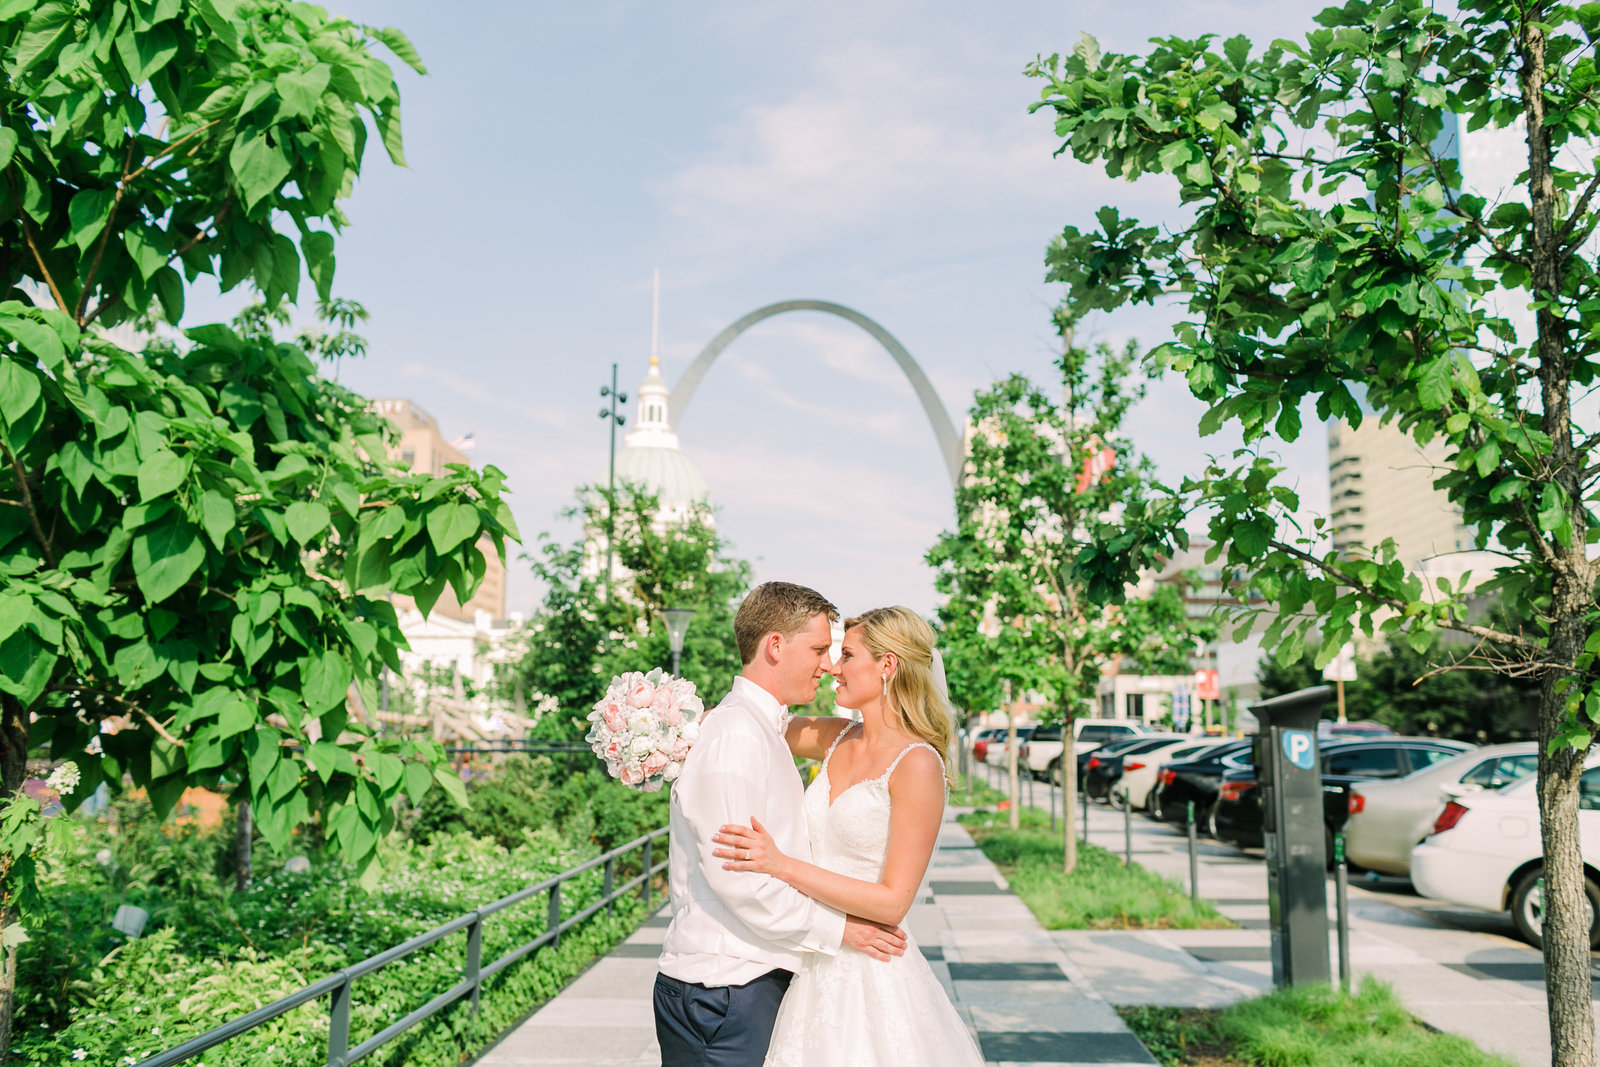 Bride and Groom, Molly and Marcus, embrace on the sidewalk of Kiener Plaza with the St. Louis Arch in the background.